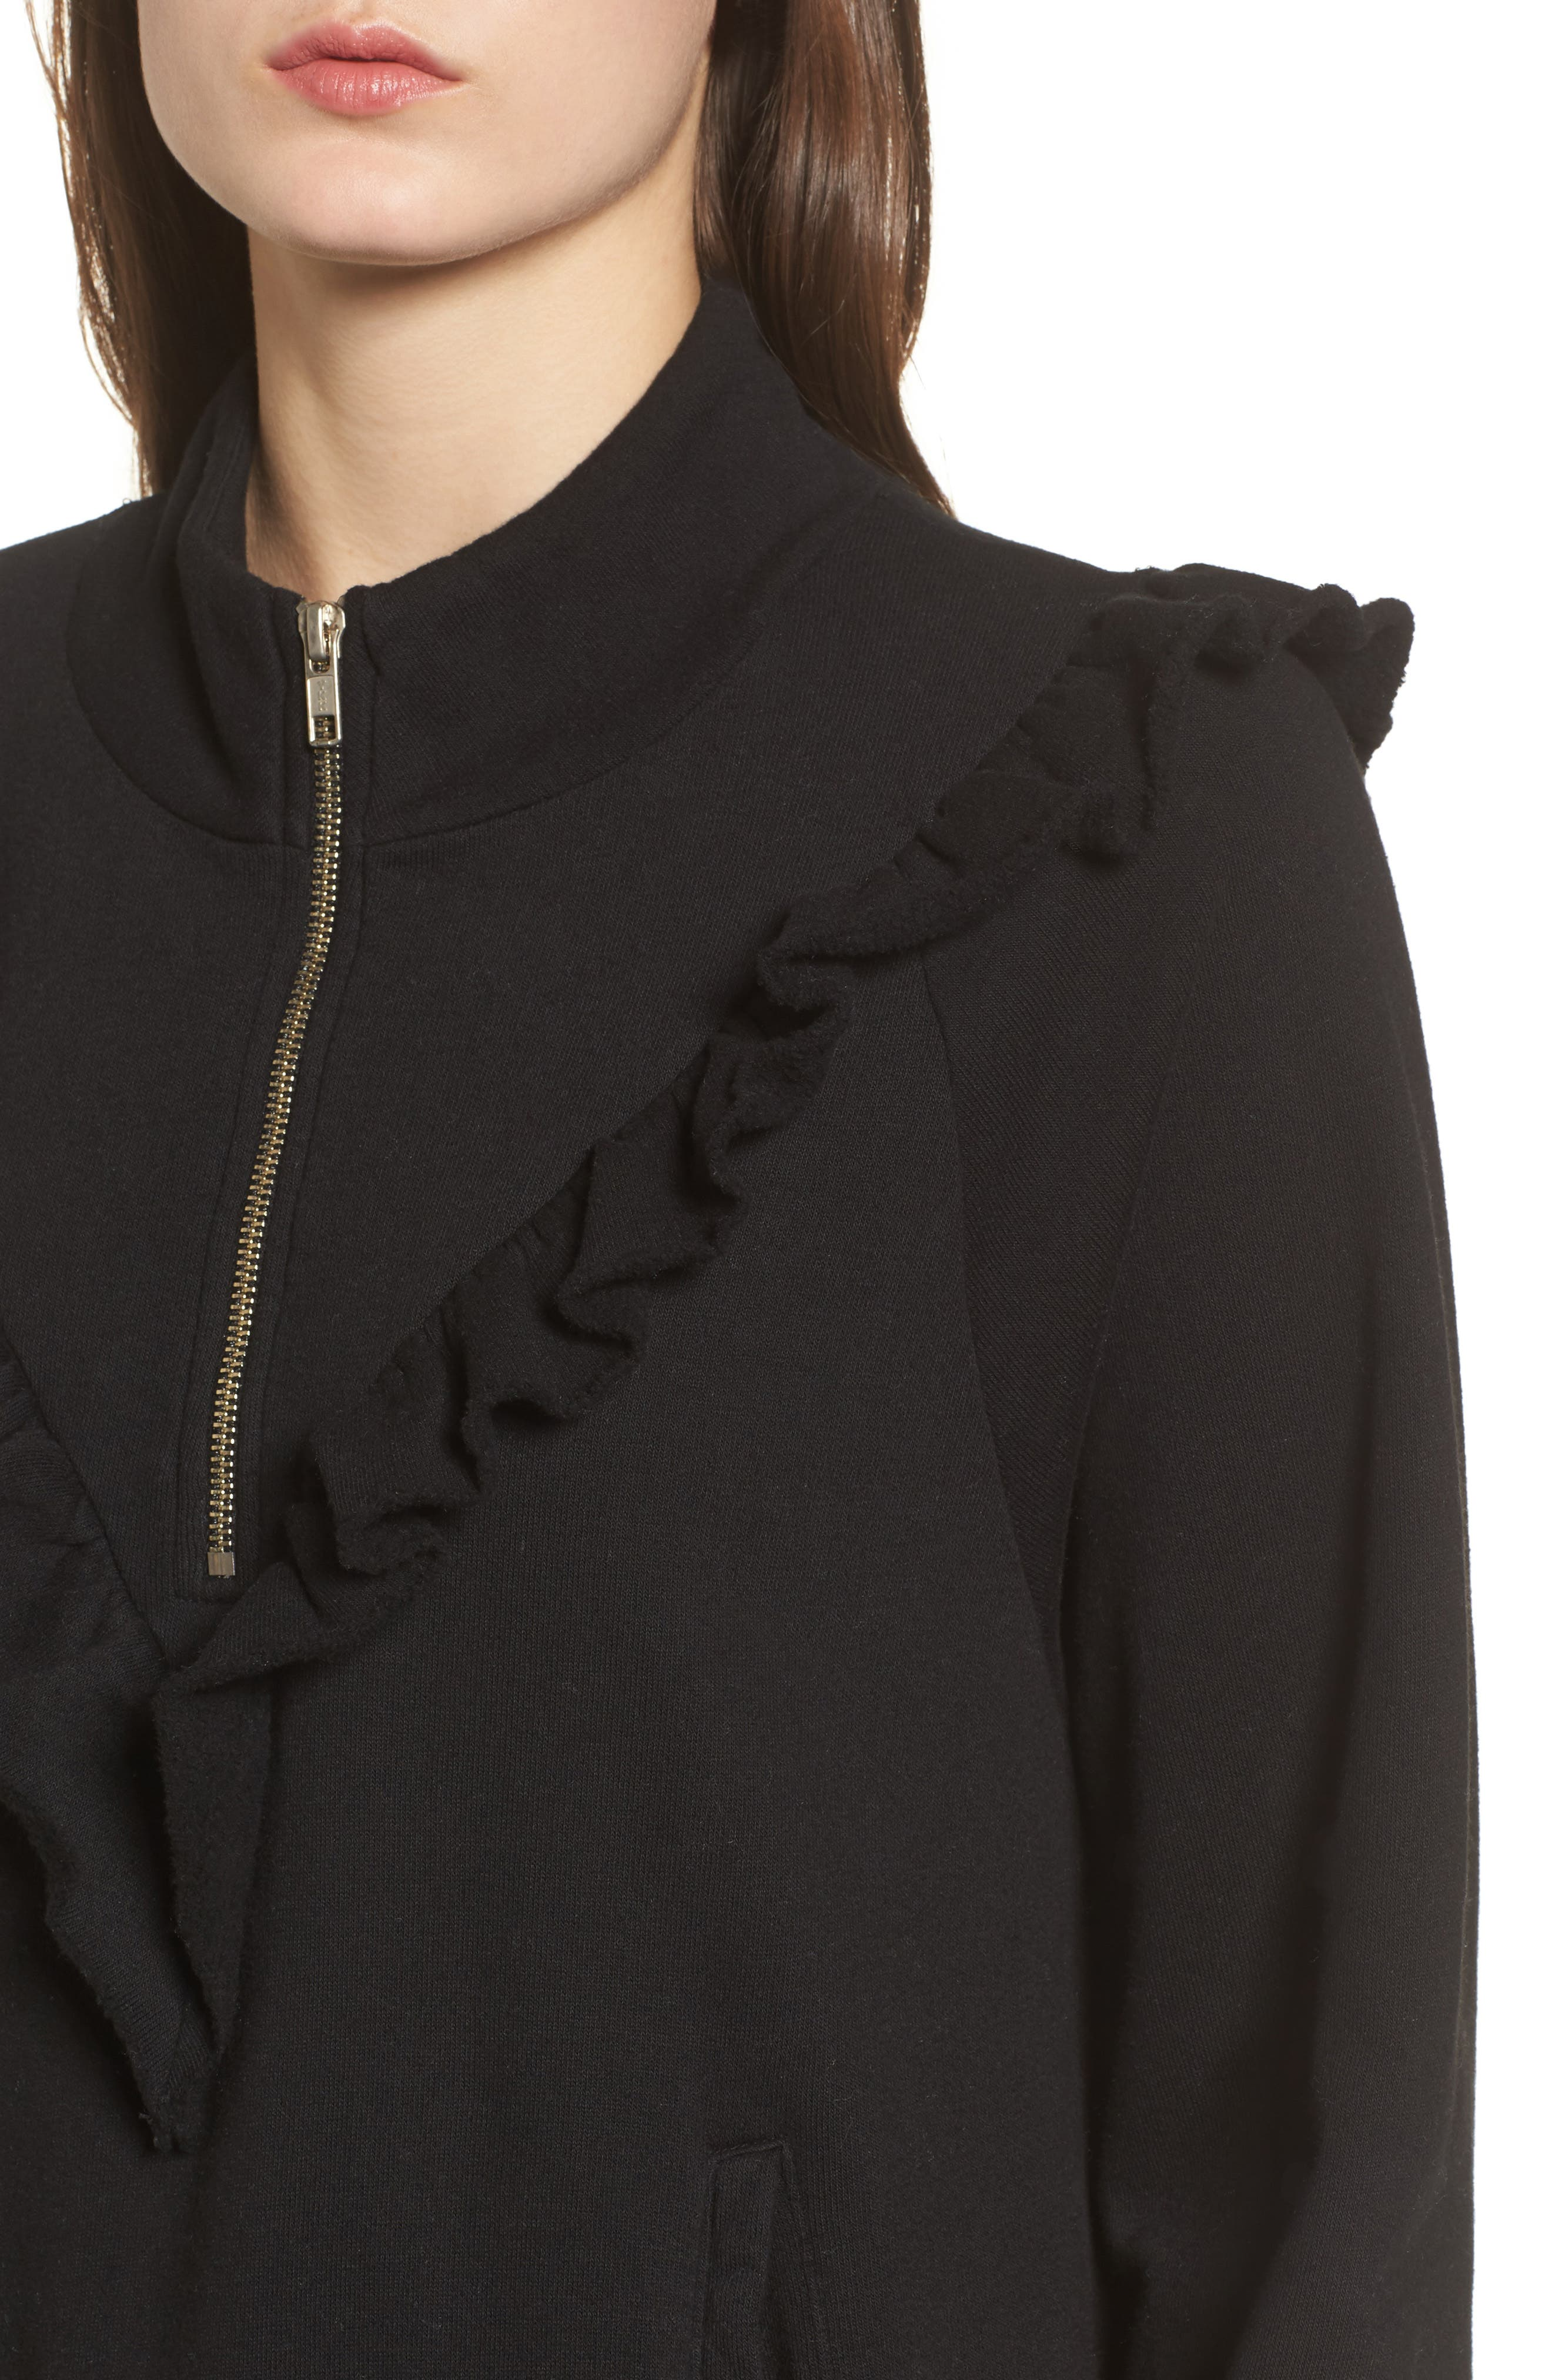 Prima Ruffle Warm-Up Pullover,                             Alternate thumbnail 4, color,                             Black